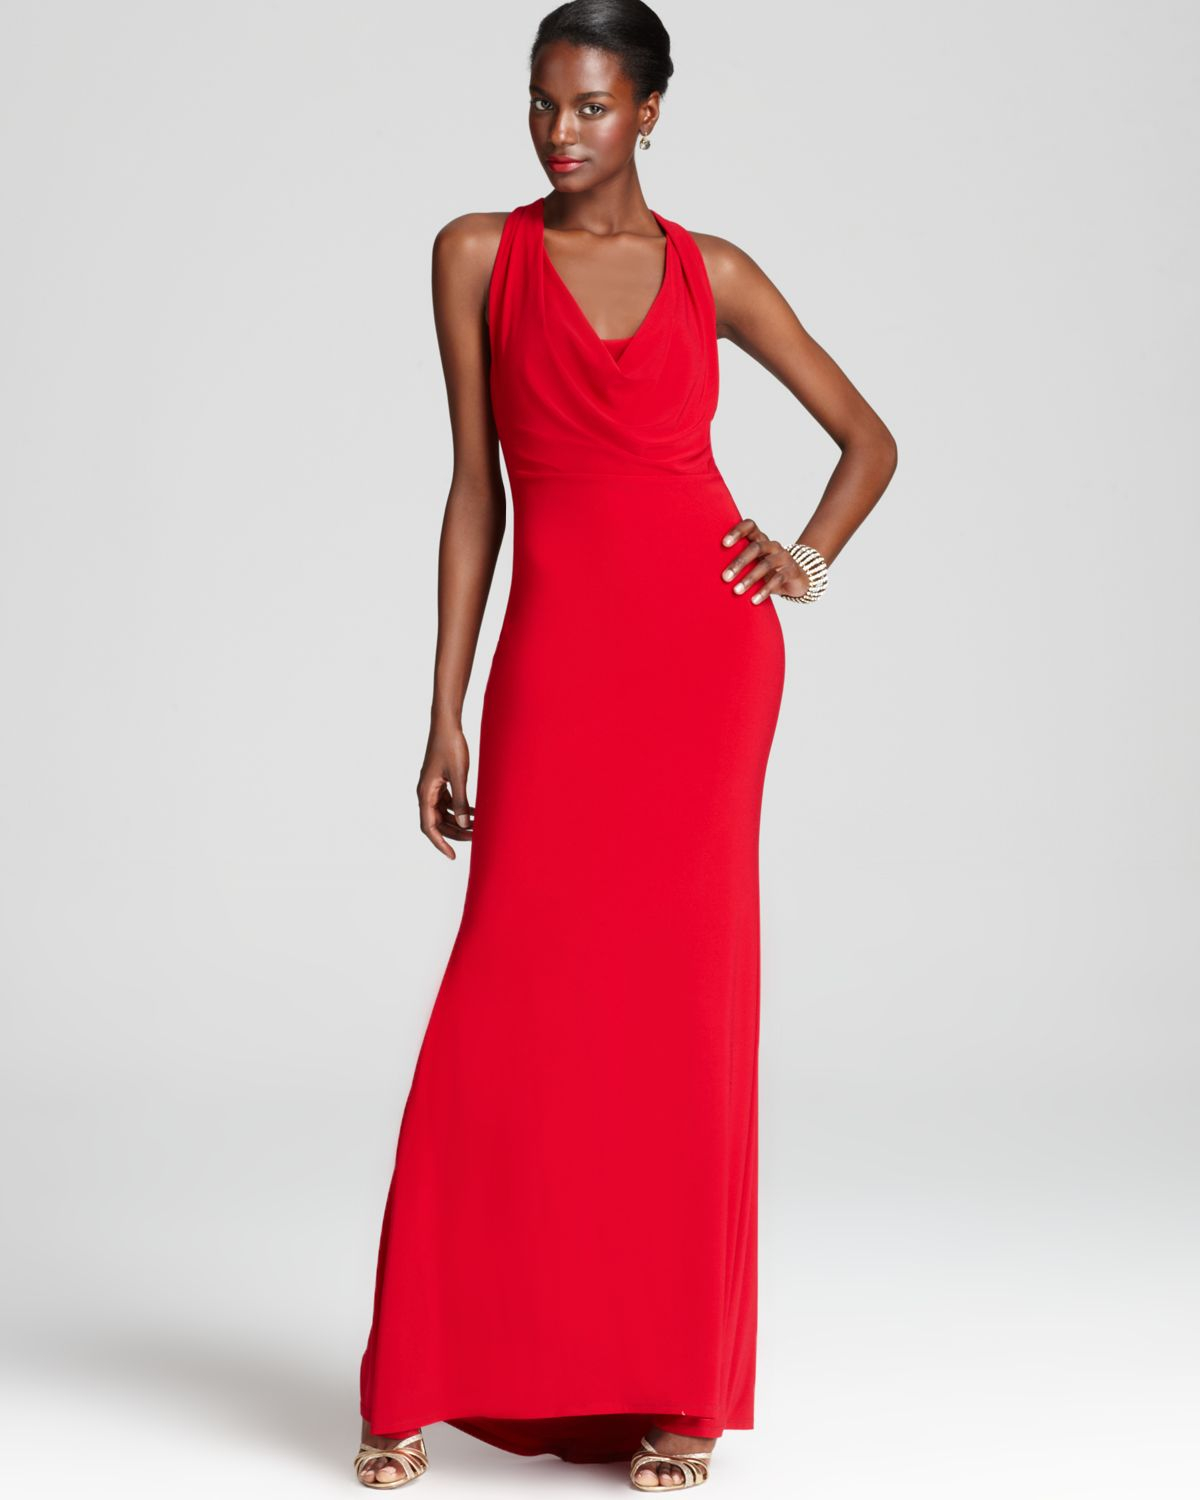 Lyst - Abs By Allen Schwartz Sleeveless Gown Cowl Neck in Red